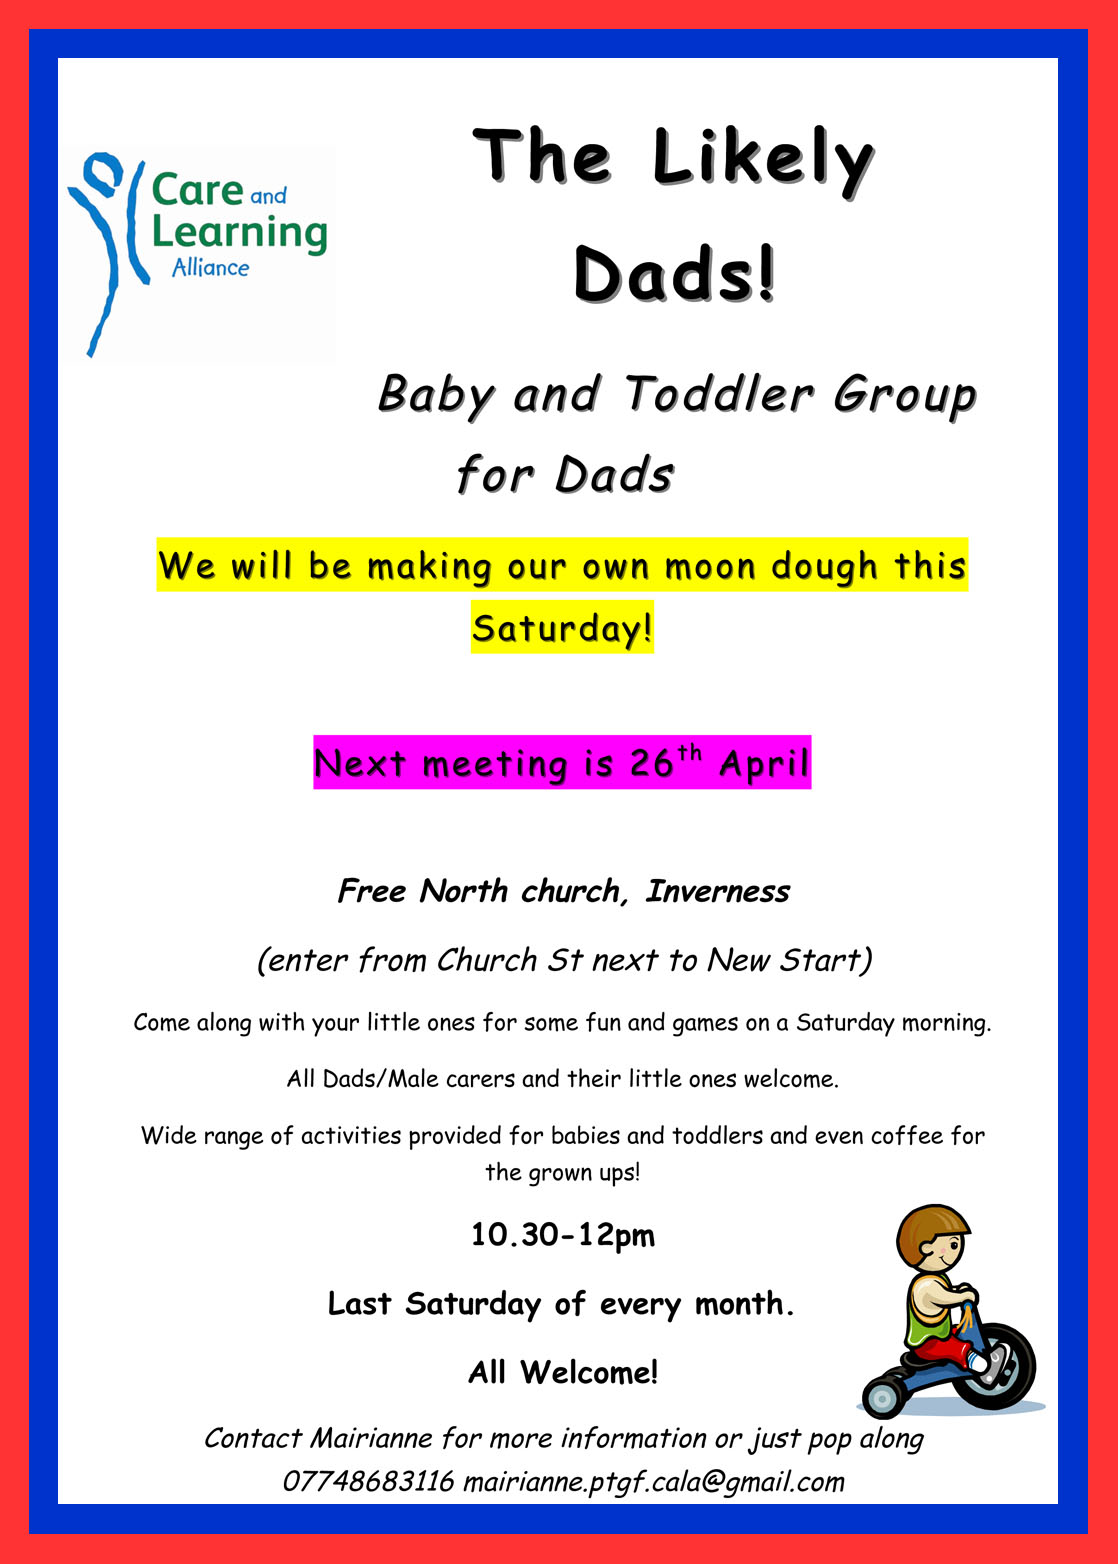 Moon Dough The Likely Dads Fun This Saturday In